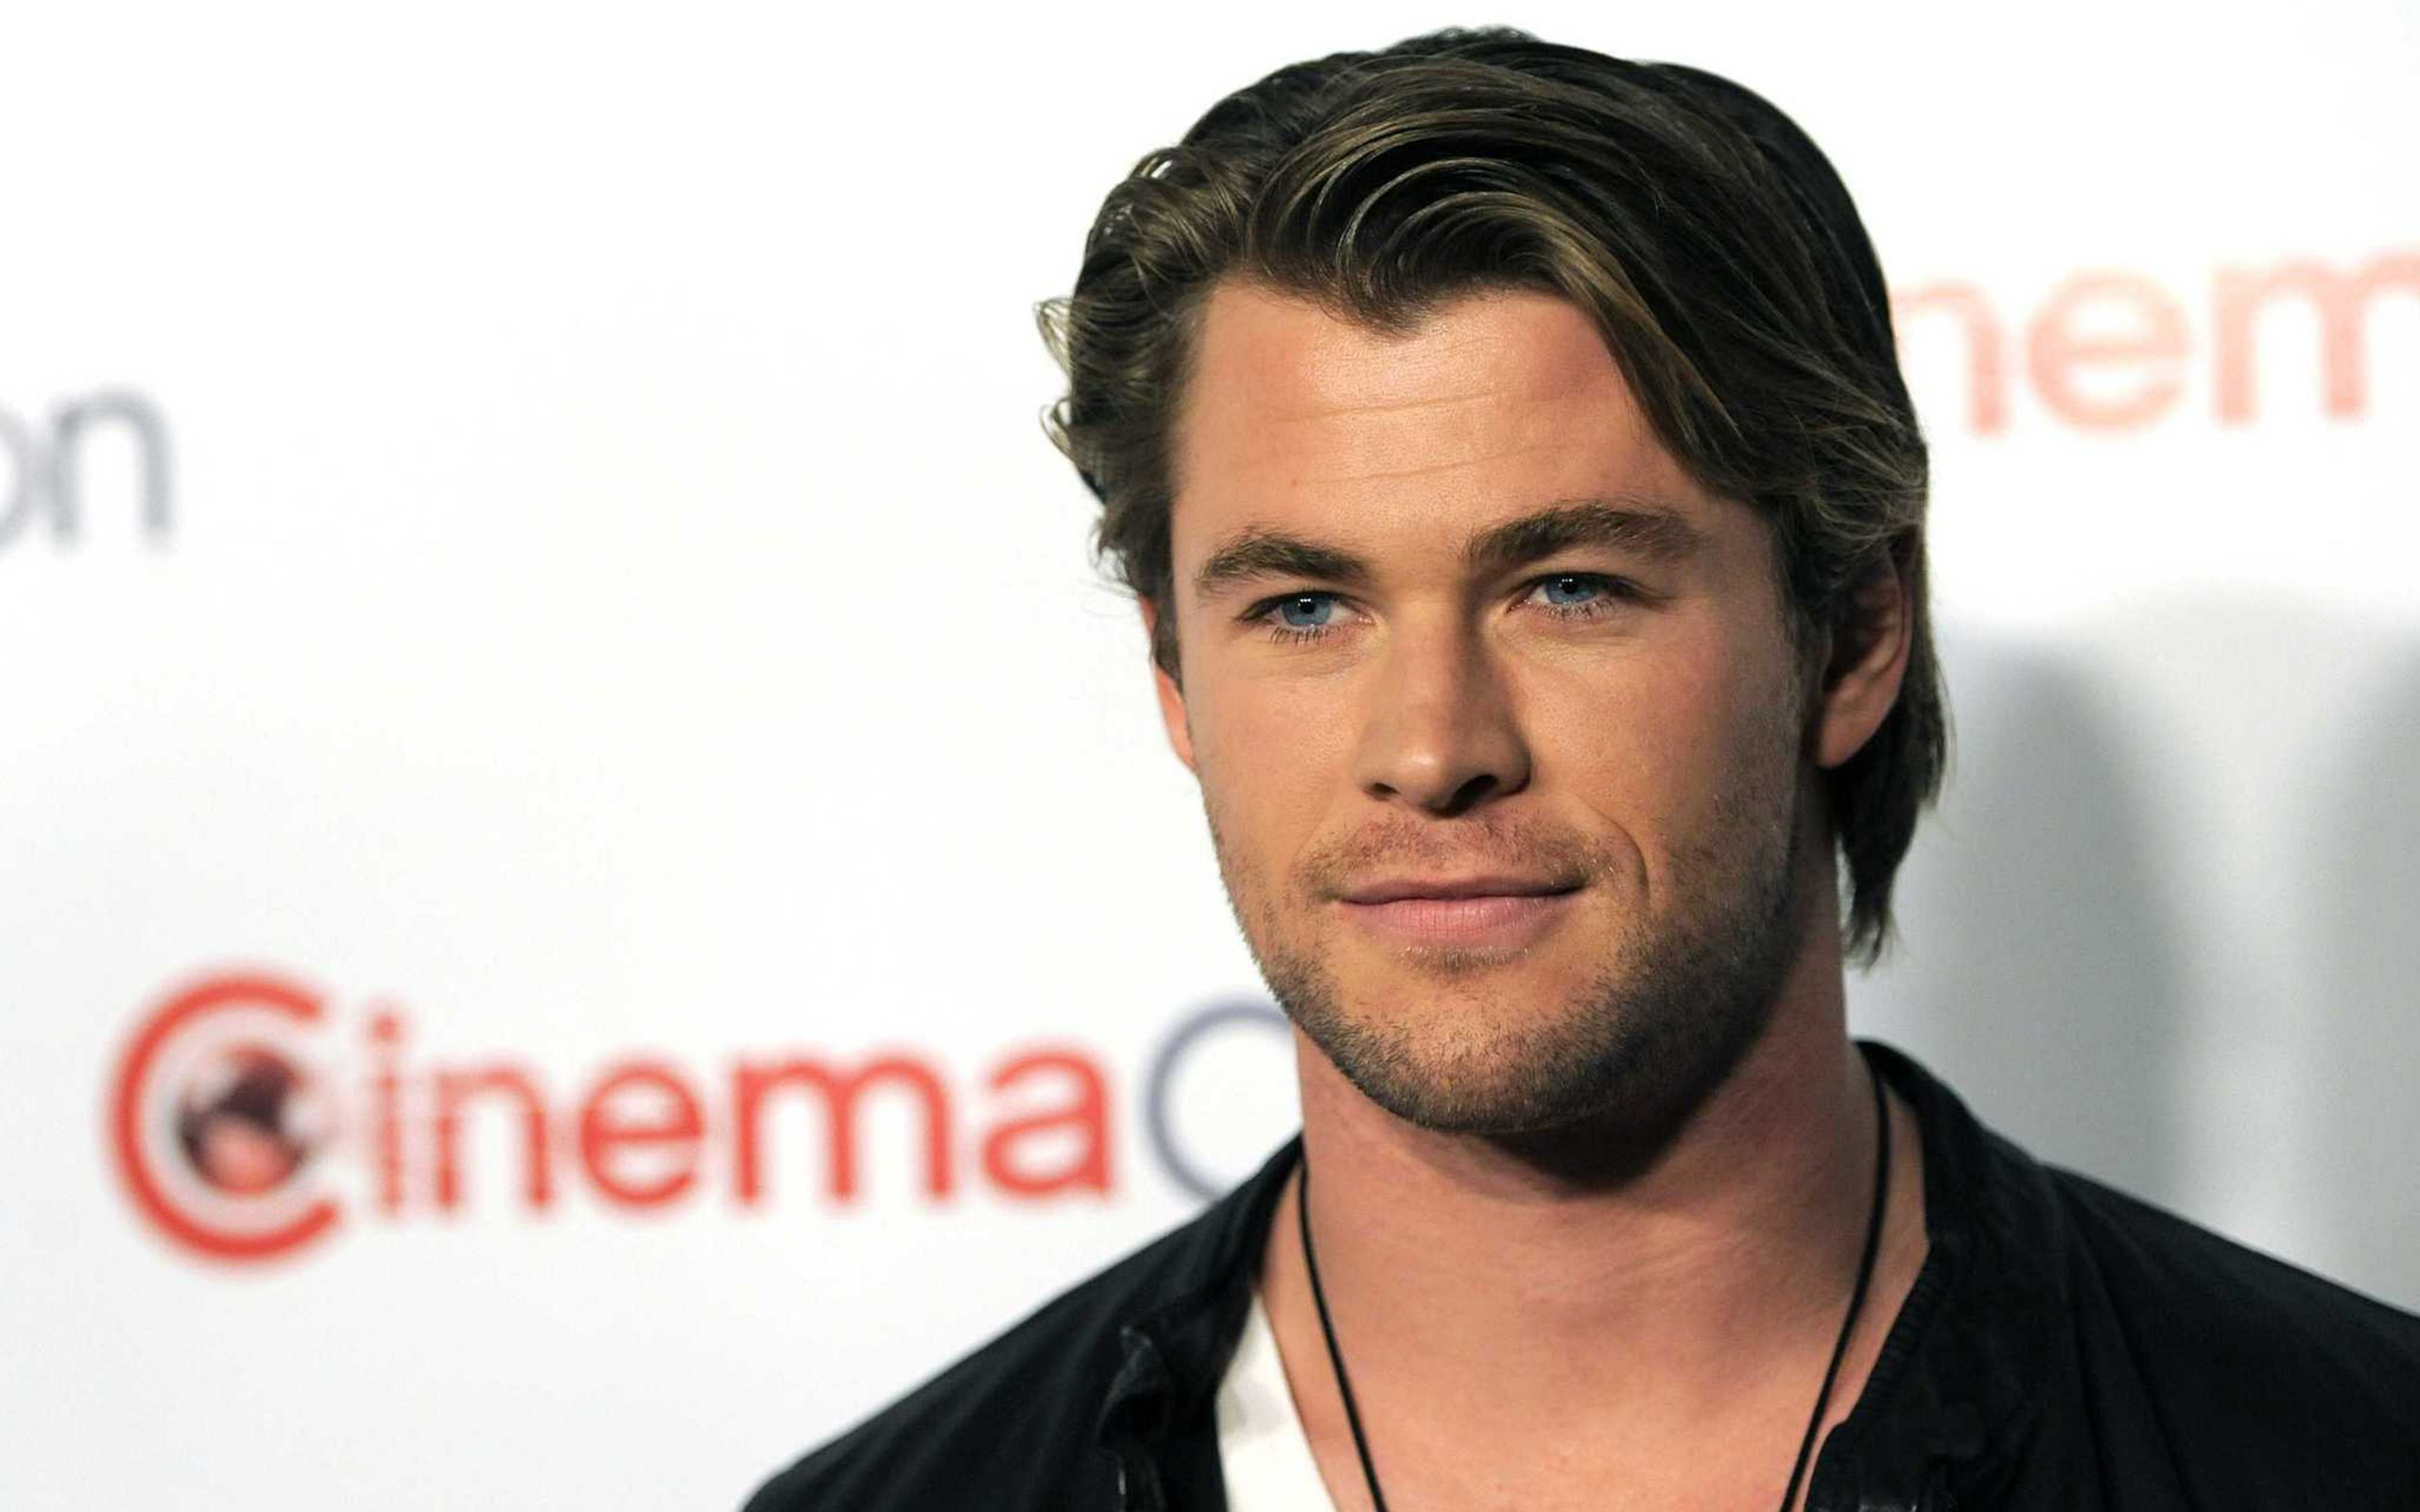 Chris Hemsworth | Hemsworth, Chris hemsworth ...